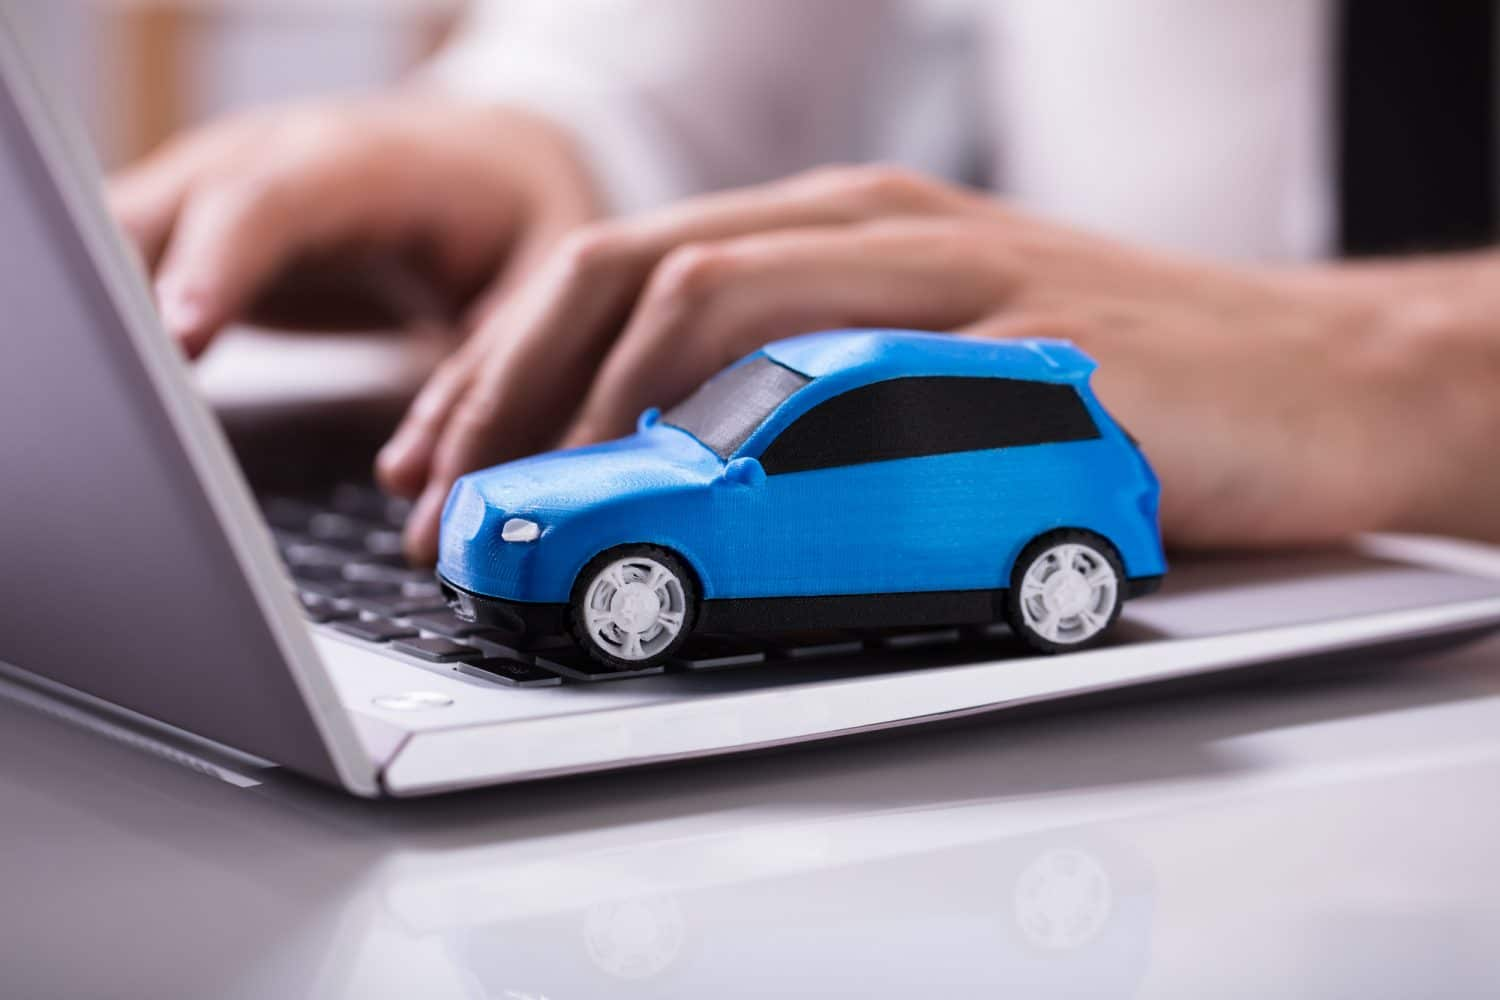 car toy on top of a laptop